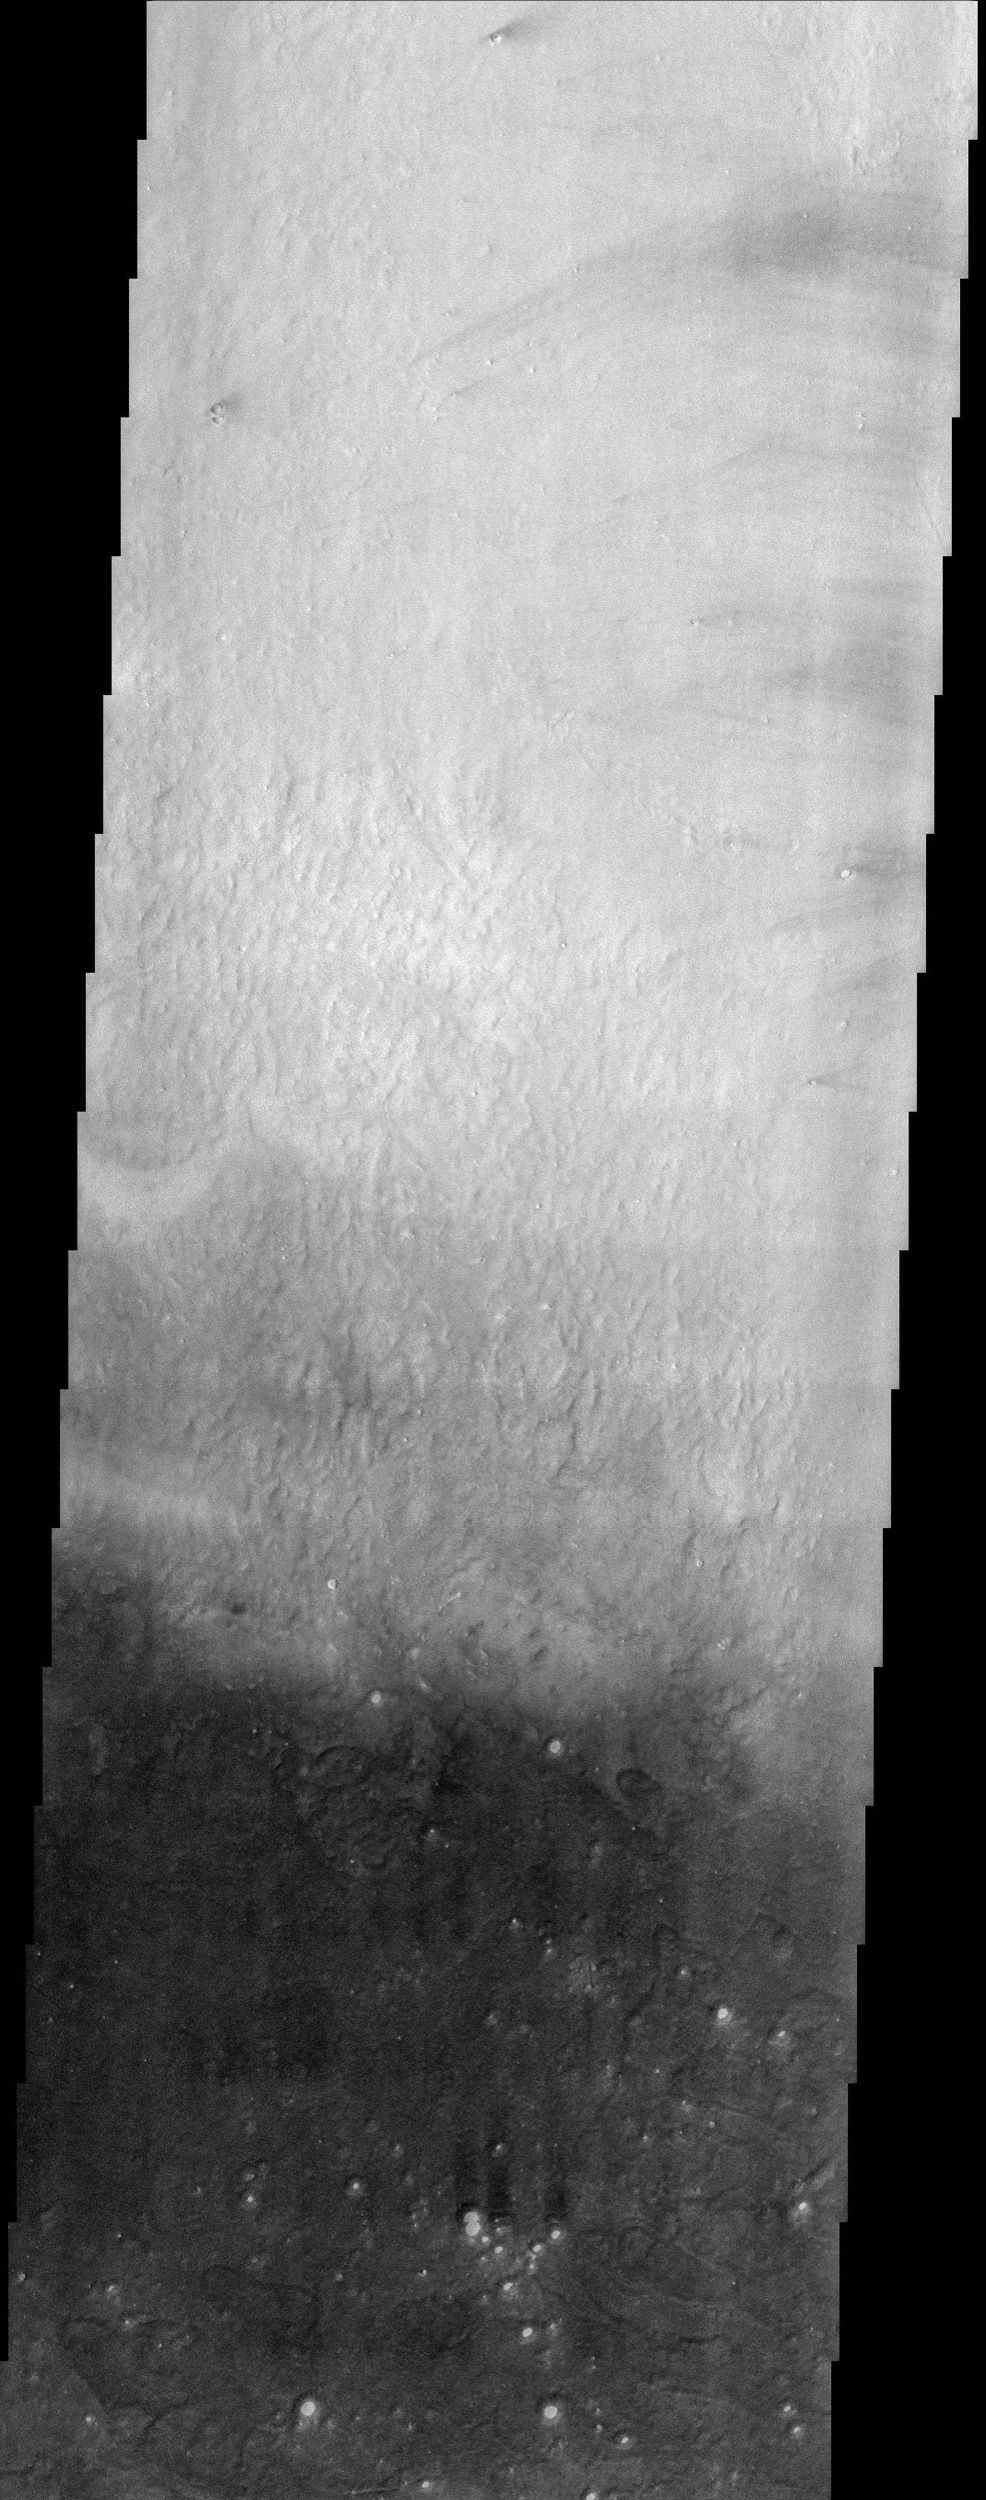 Arcadia Planitia, shown in this NASA Mars Odyssey image, occupies a region just north of Amazonis Planitia, one of the brightest and dustiest regions on Mars.